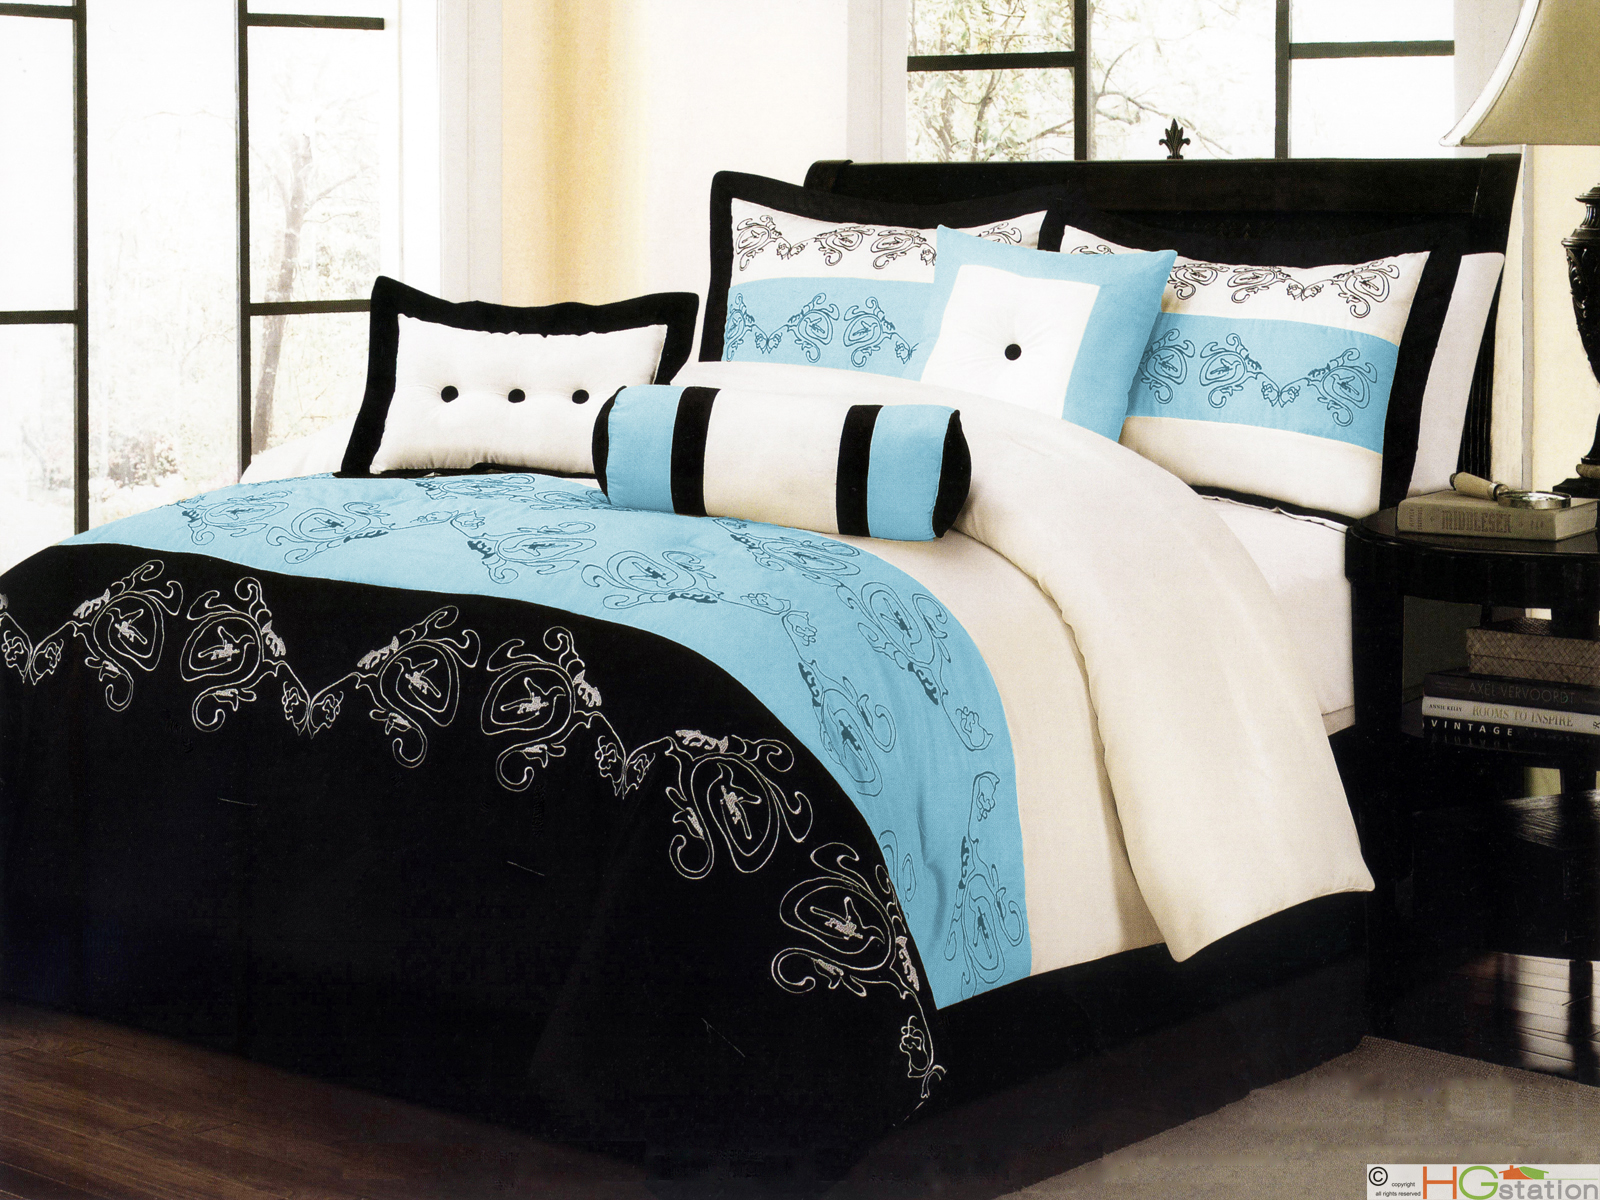 Black White And Blue Comforter Sets 28 Images Black